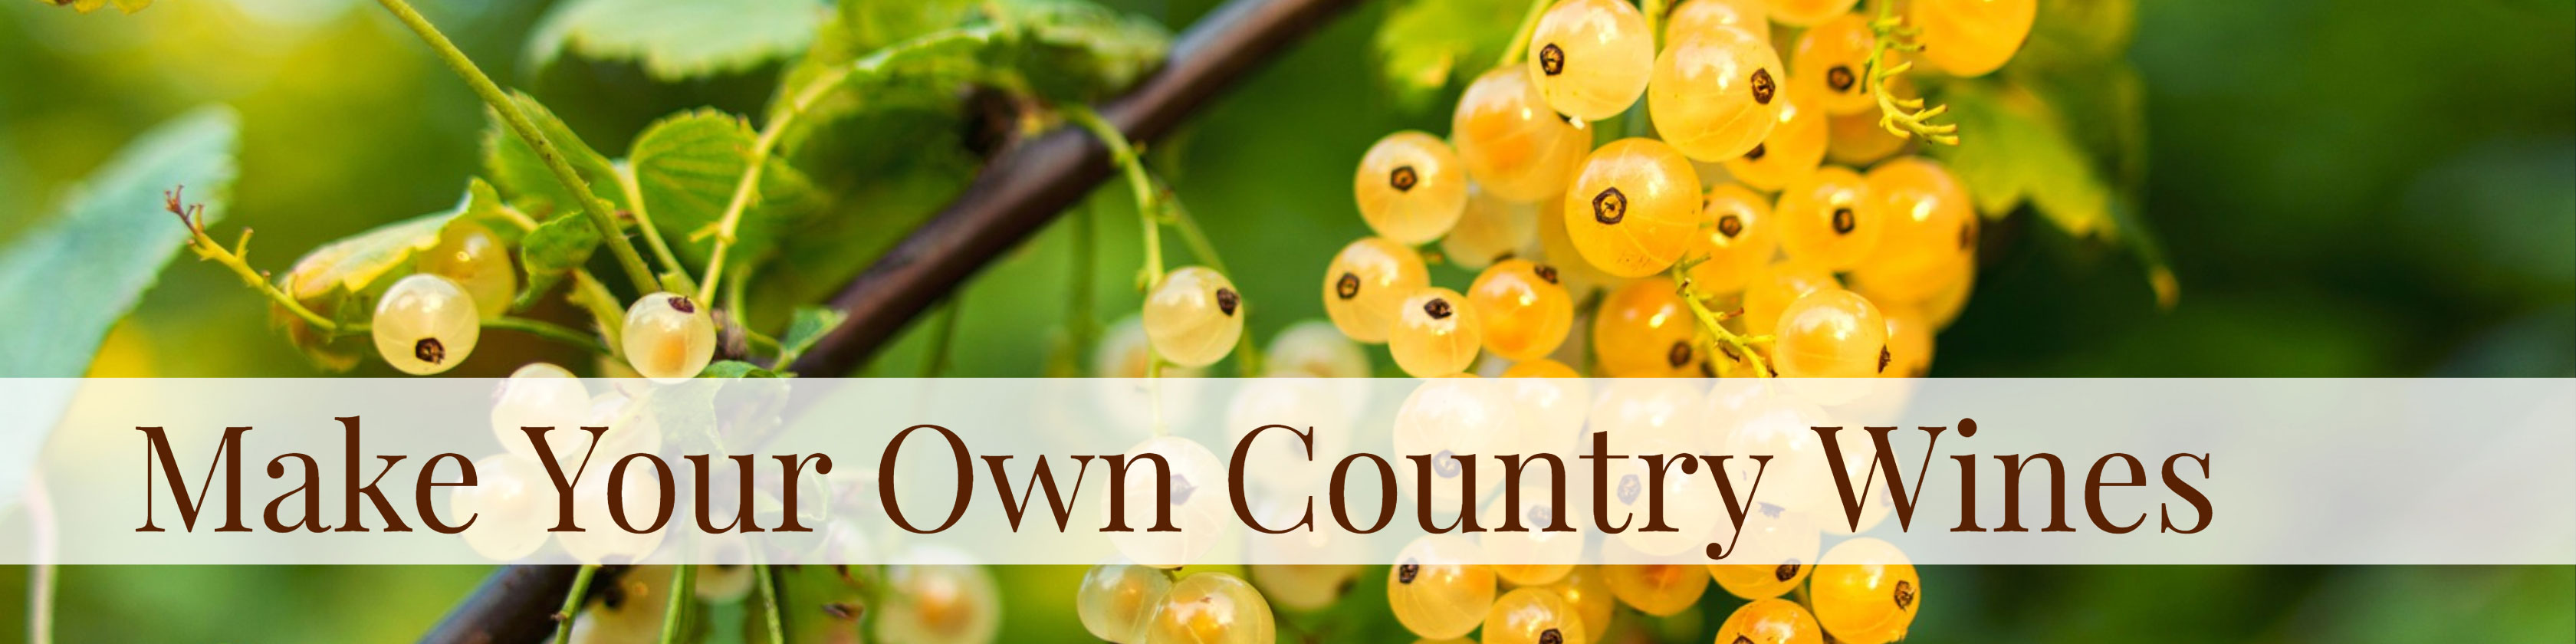 make-your-own-country-wines